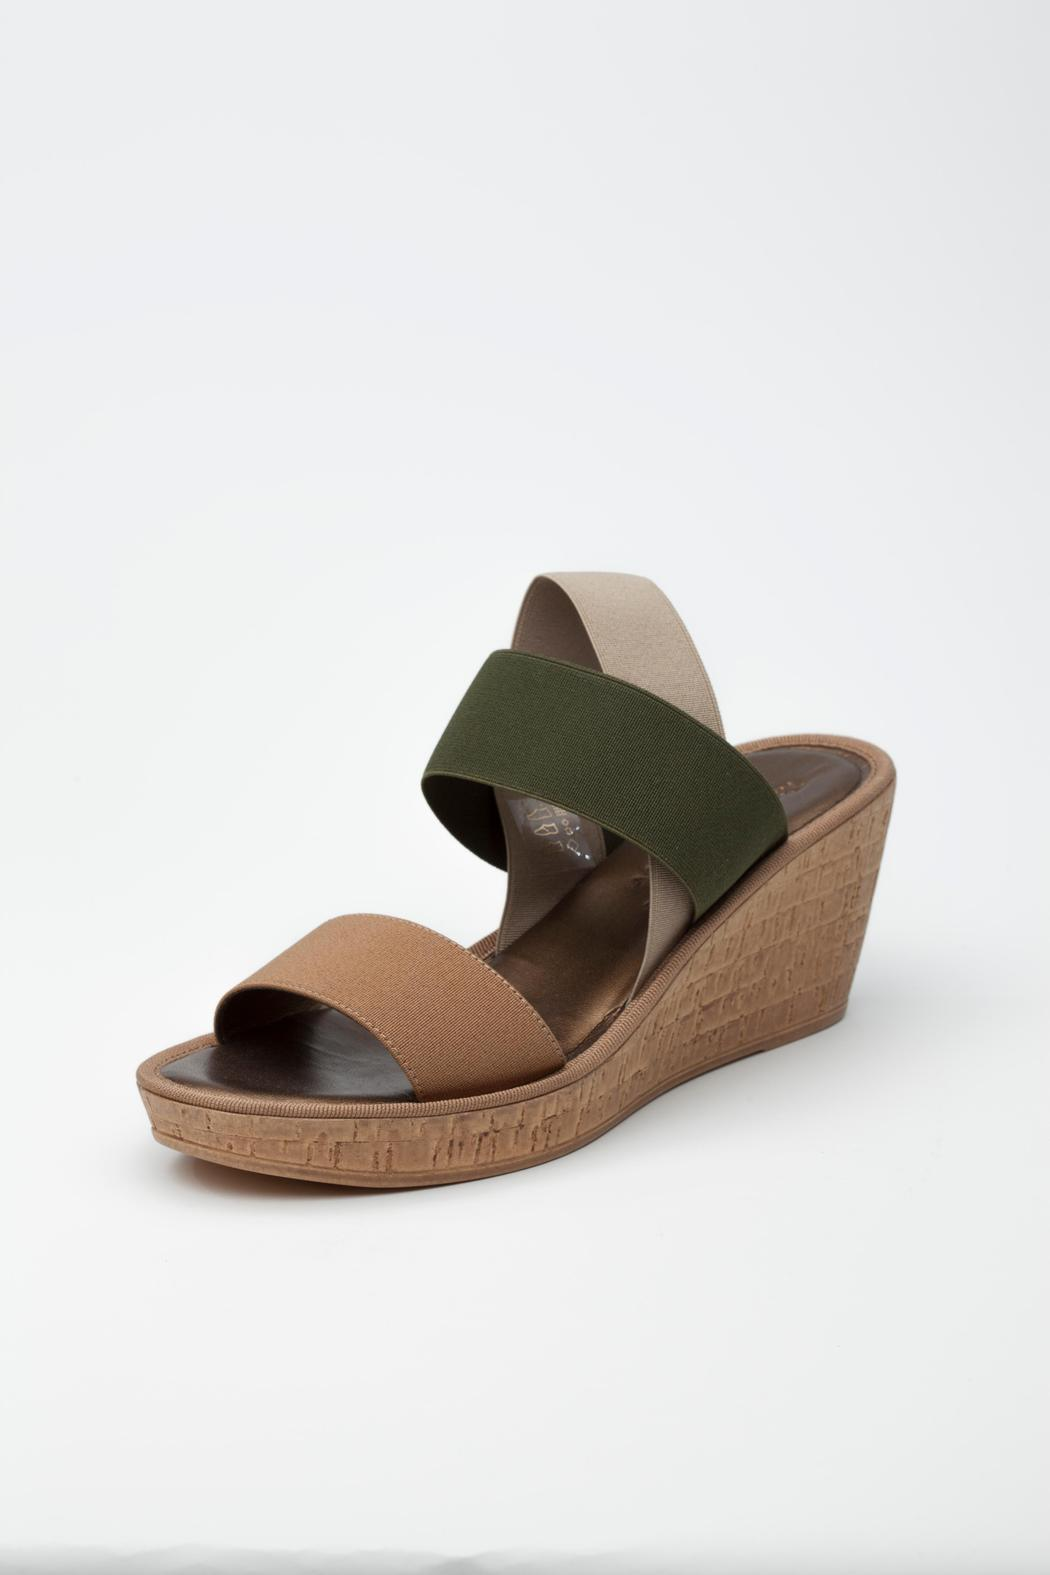 A Snug Fit Or Loose Fitting Shoe